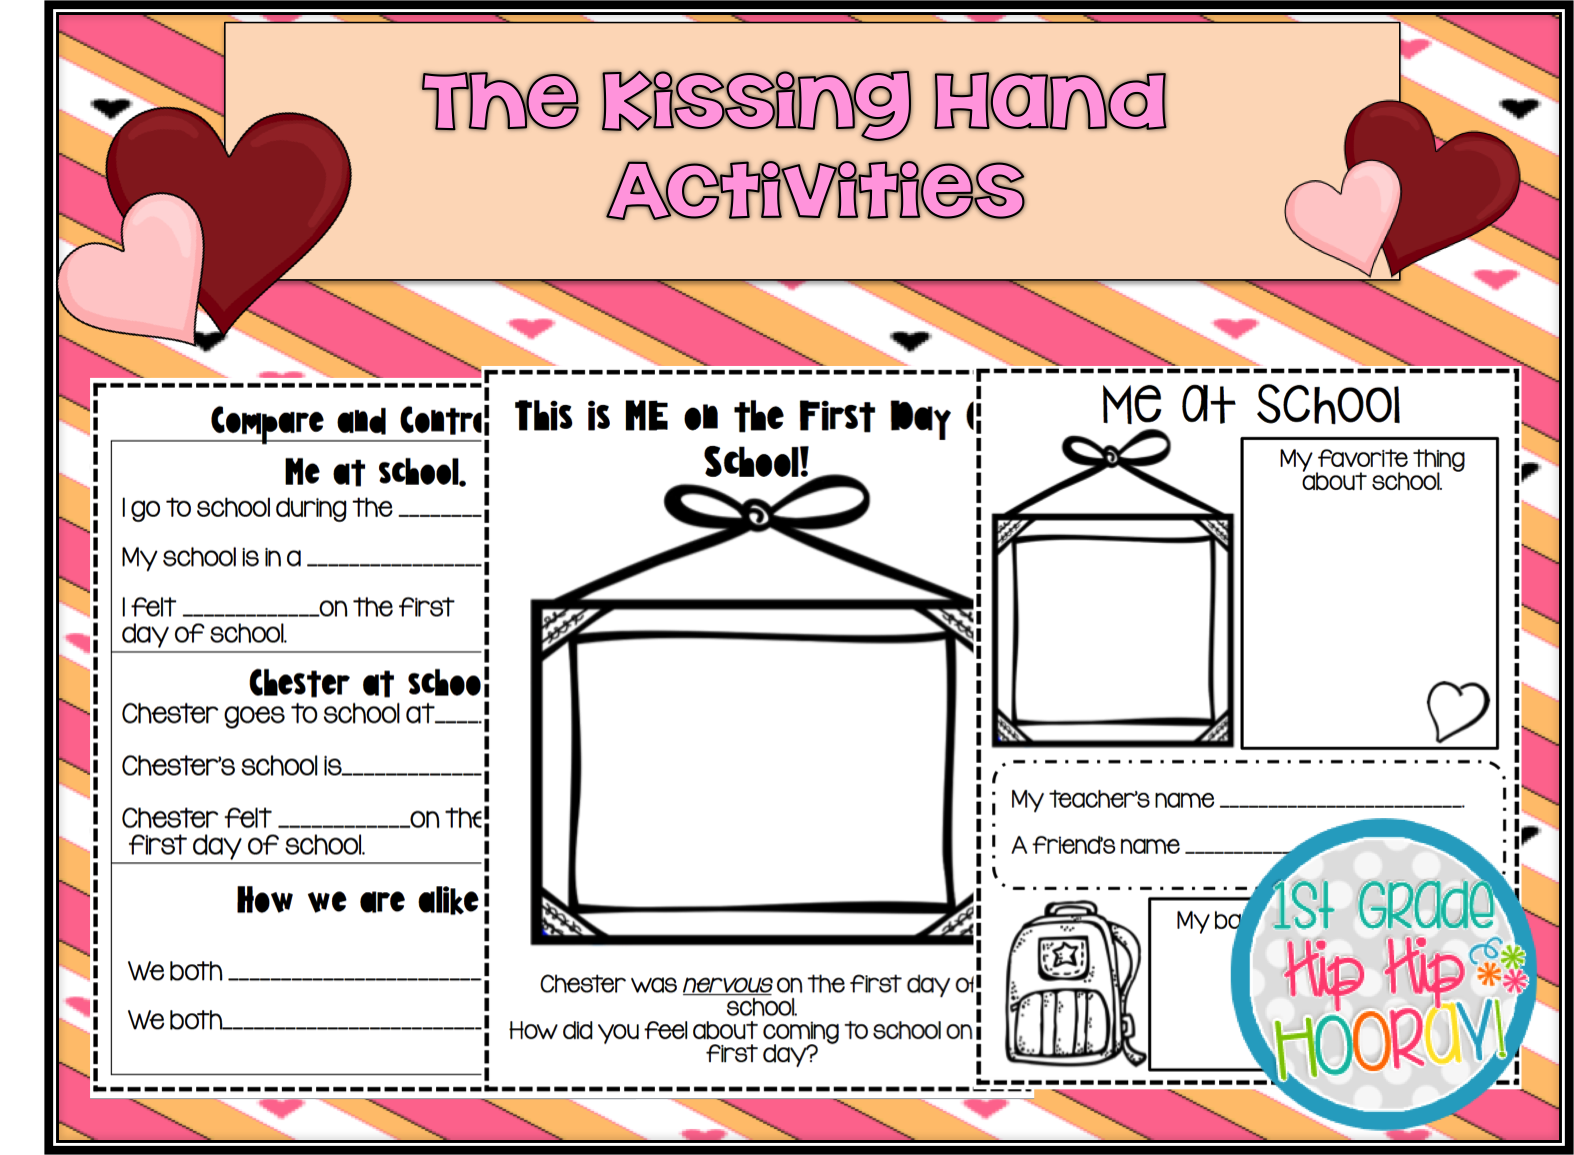 1st Grade Hip Hip Hooray The Kissing Hand Craft And